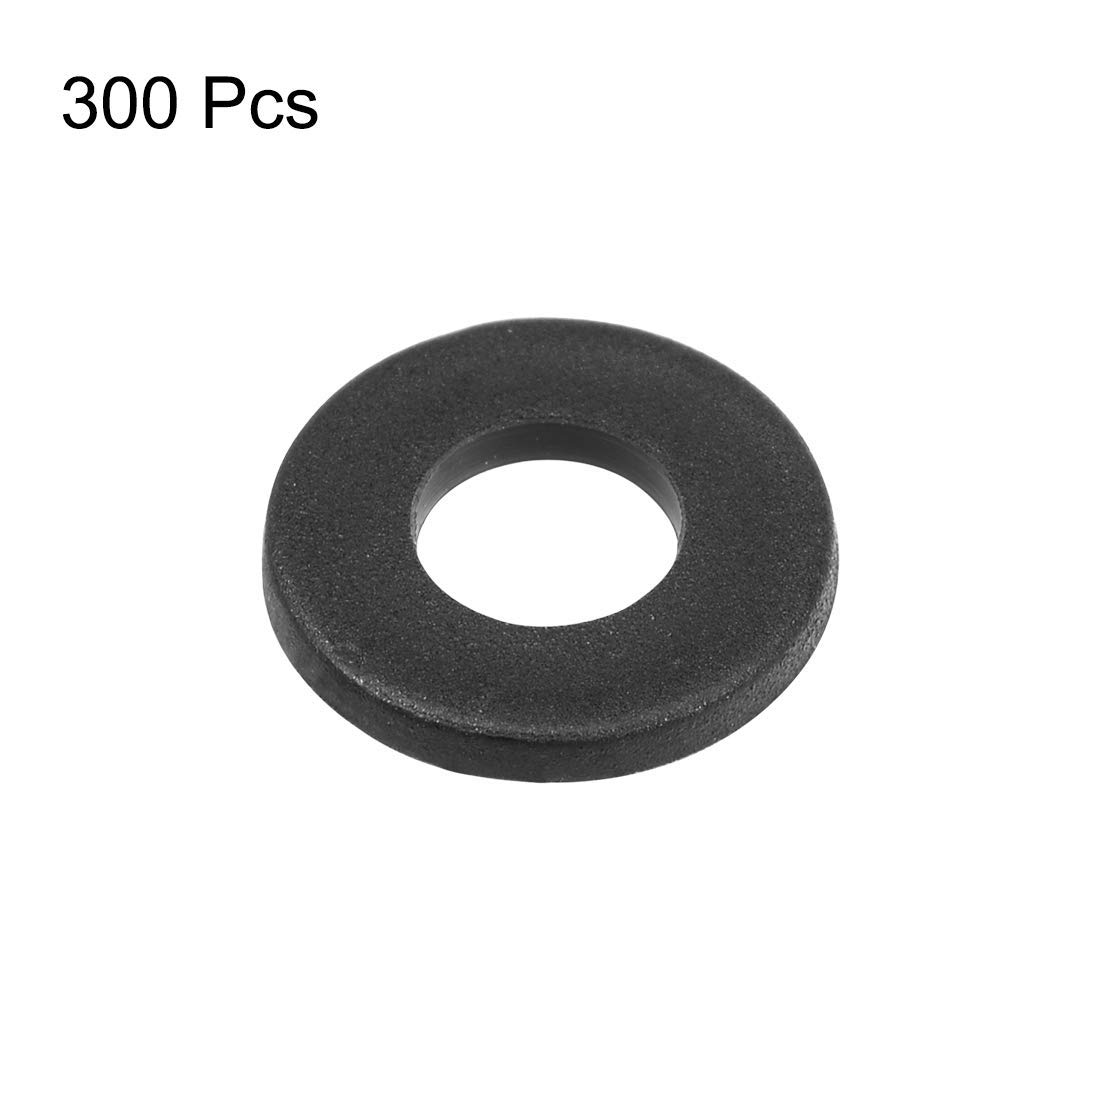 Nylon Flat washers for M4 Screw Bolt 9 mm OD 1 mm Thick 300 Pieces